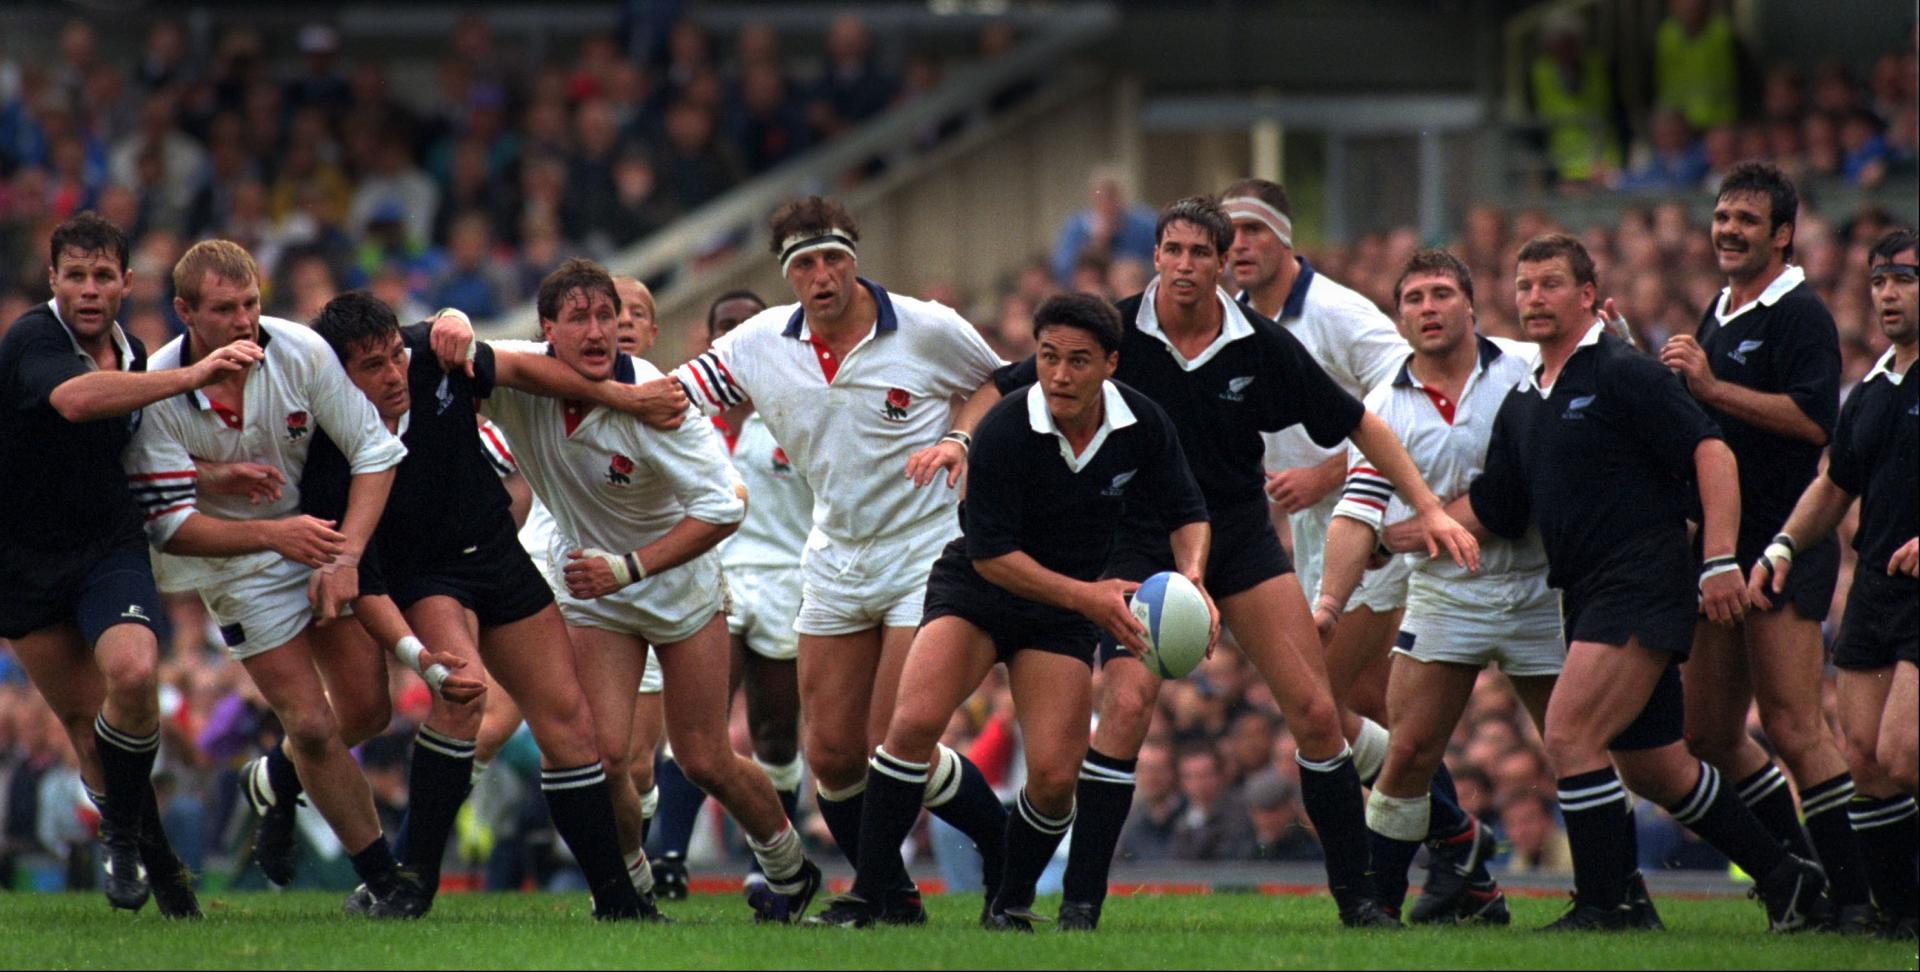 World Rugby Cup - Twickenham 1991